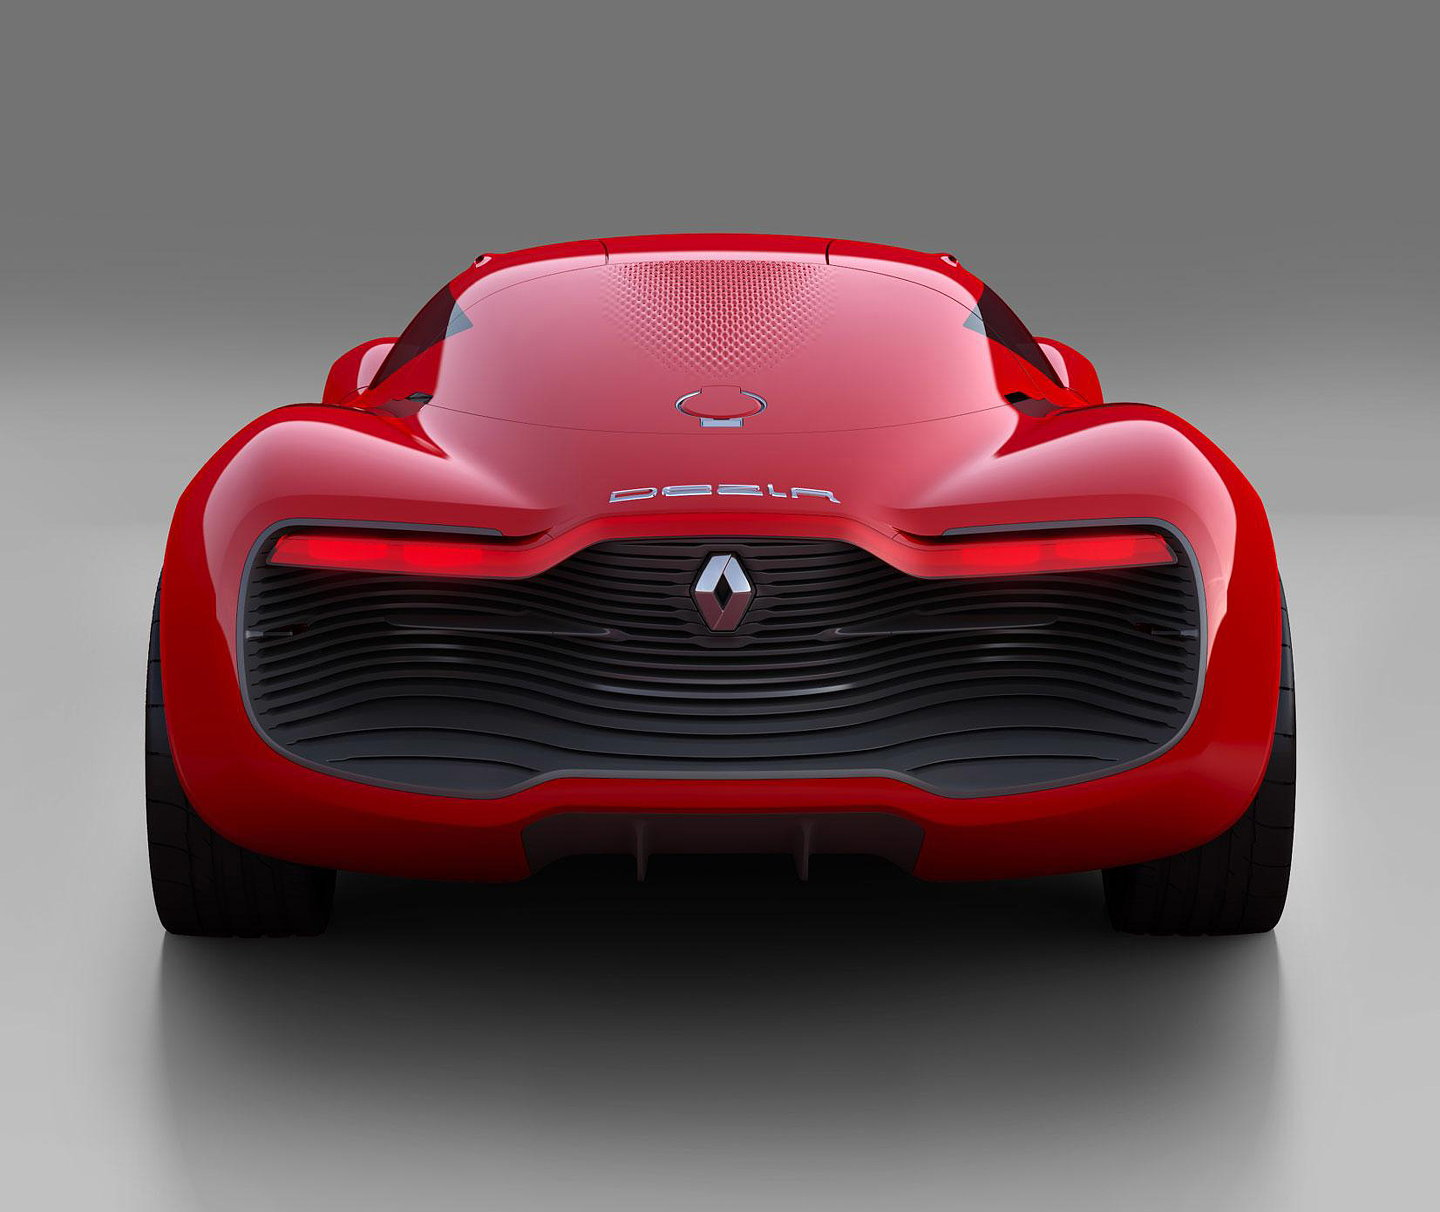 Renault DeZir: Renault Design's New Vision For The Future